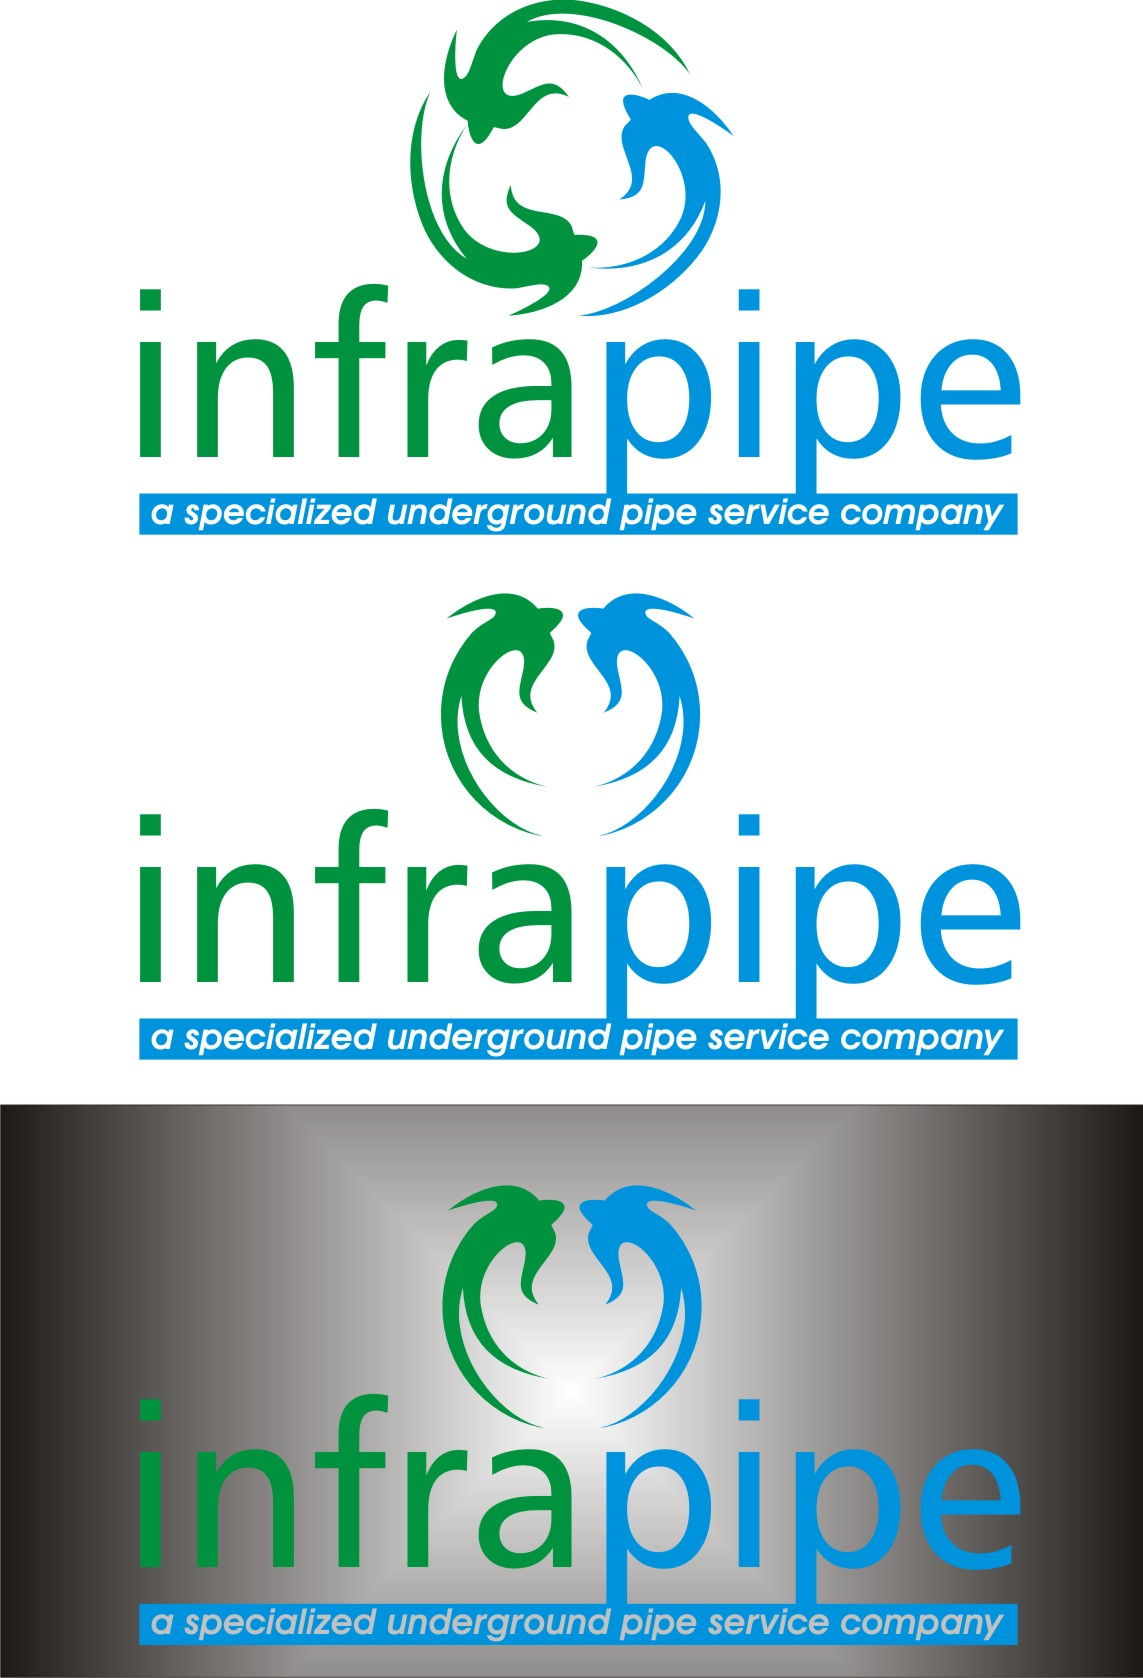 Logo Design by Korsunov Oleg - Entry No. 43 in the Logo Design Contest Inspiring Logo Design for Infrapipe.